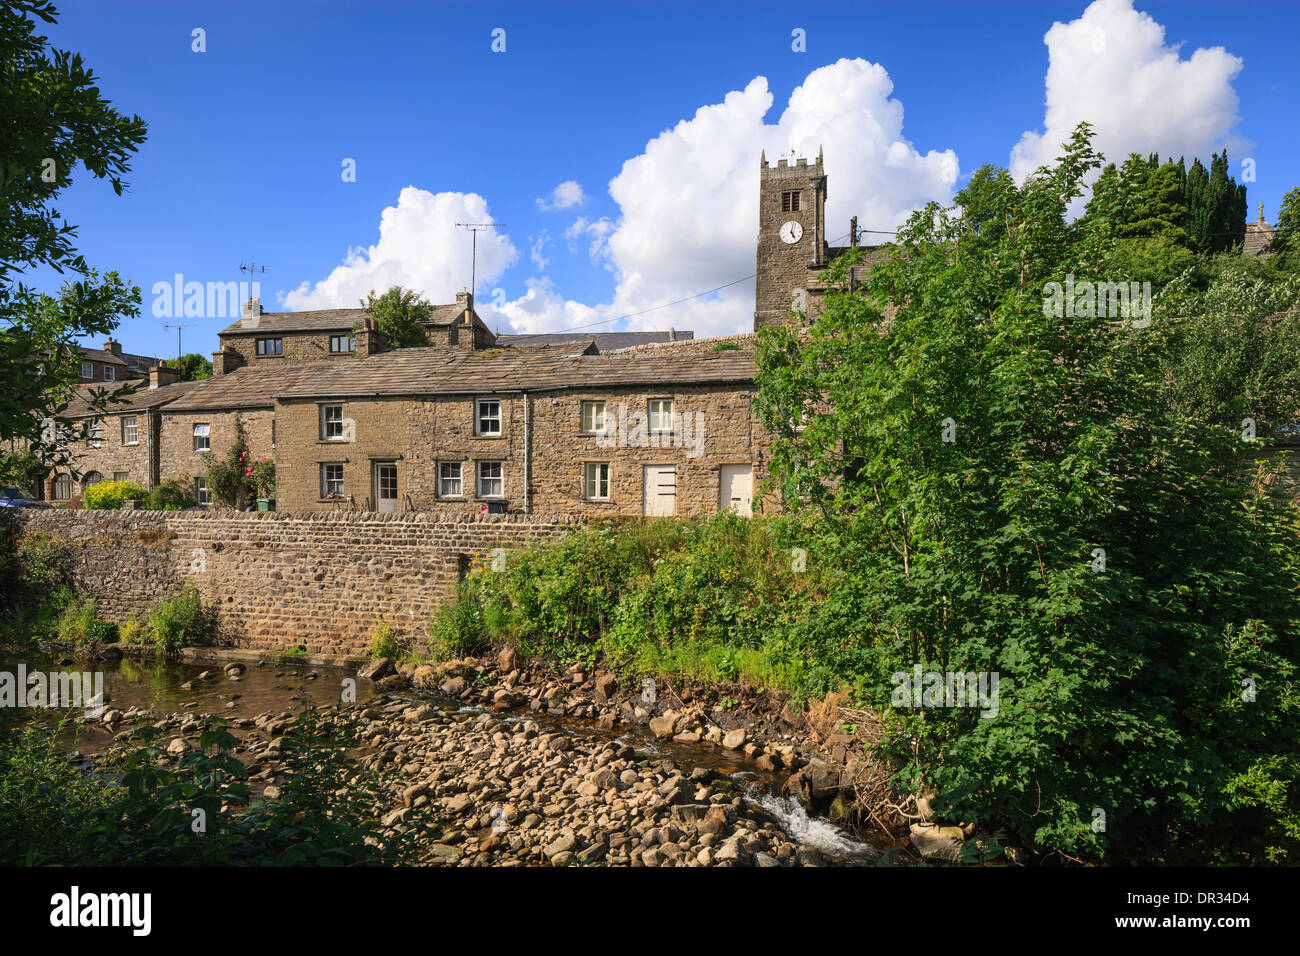 Muker Upper Swaledale Yorkshire Dales National Park Richmondshire North Yorkshire England - Stock Image